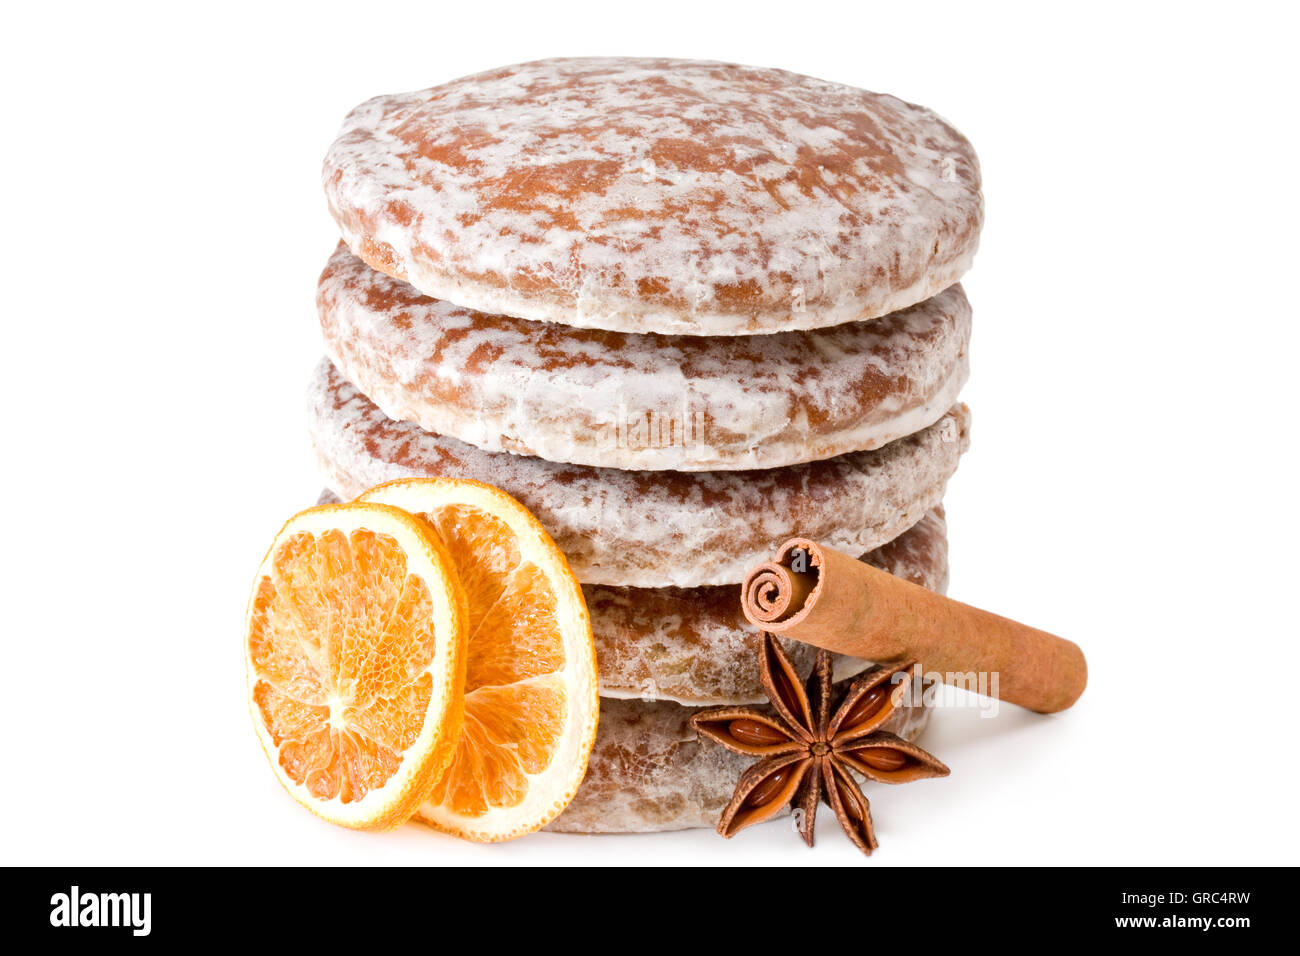 Stack Of Round Gingerbread With Spices On White Background - Stock Image